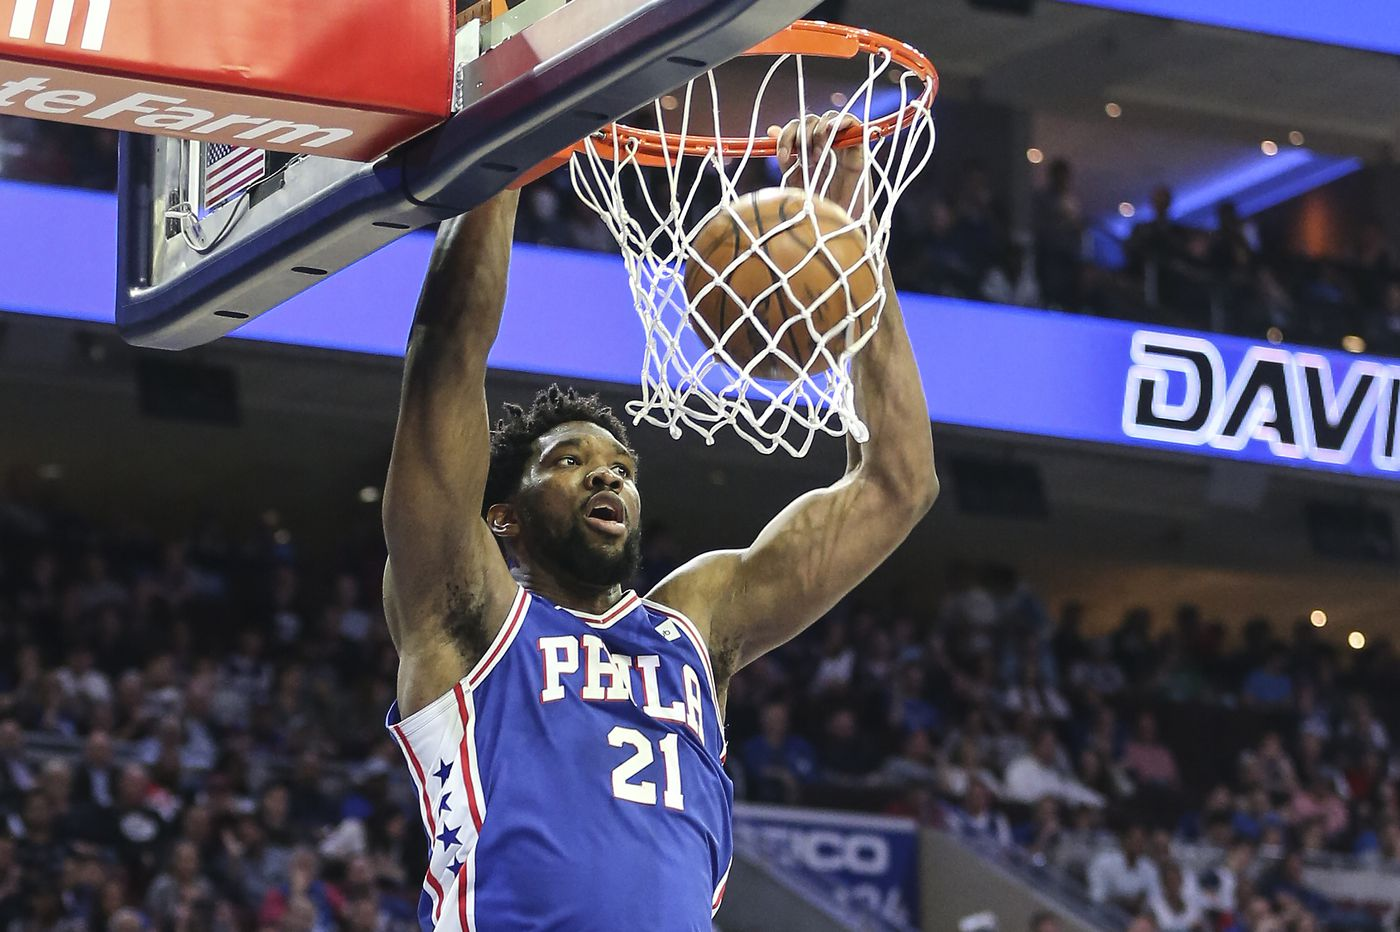 Sixers close out Nets in first-round playoff series, advance to Eastern Conference semifinals against Raptors